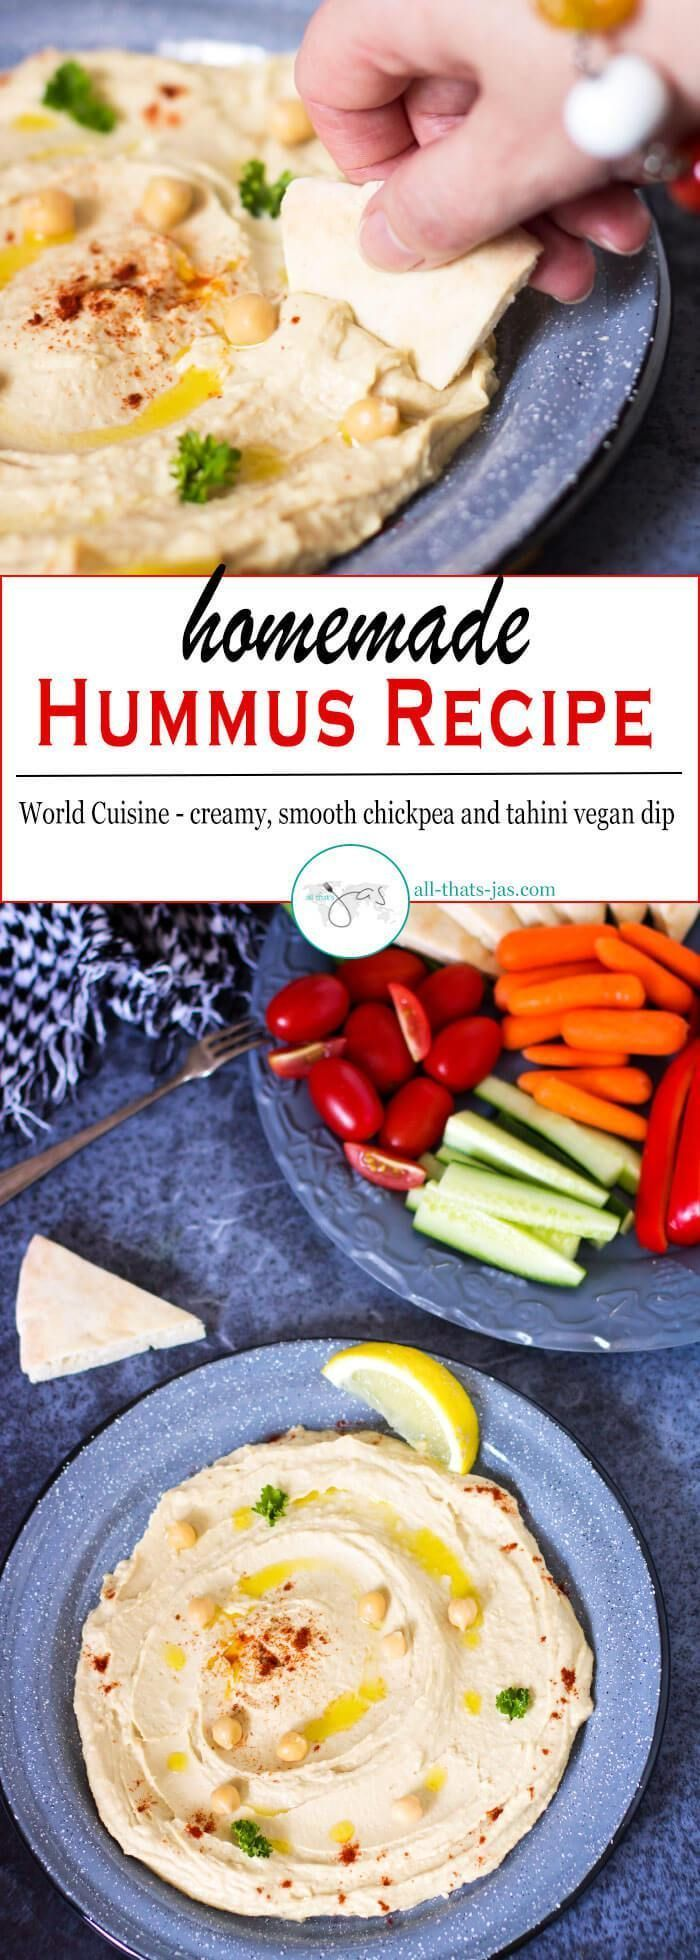 Delicious, creamy and smooth hummus made with chickpea and tahini is a vegan dip easy and quick to make at home even without a food processor.Delicious, creamy and smooth hummus made with chickpea and tahini is a vegan dip easy and quick to make at home even without a food processor.